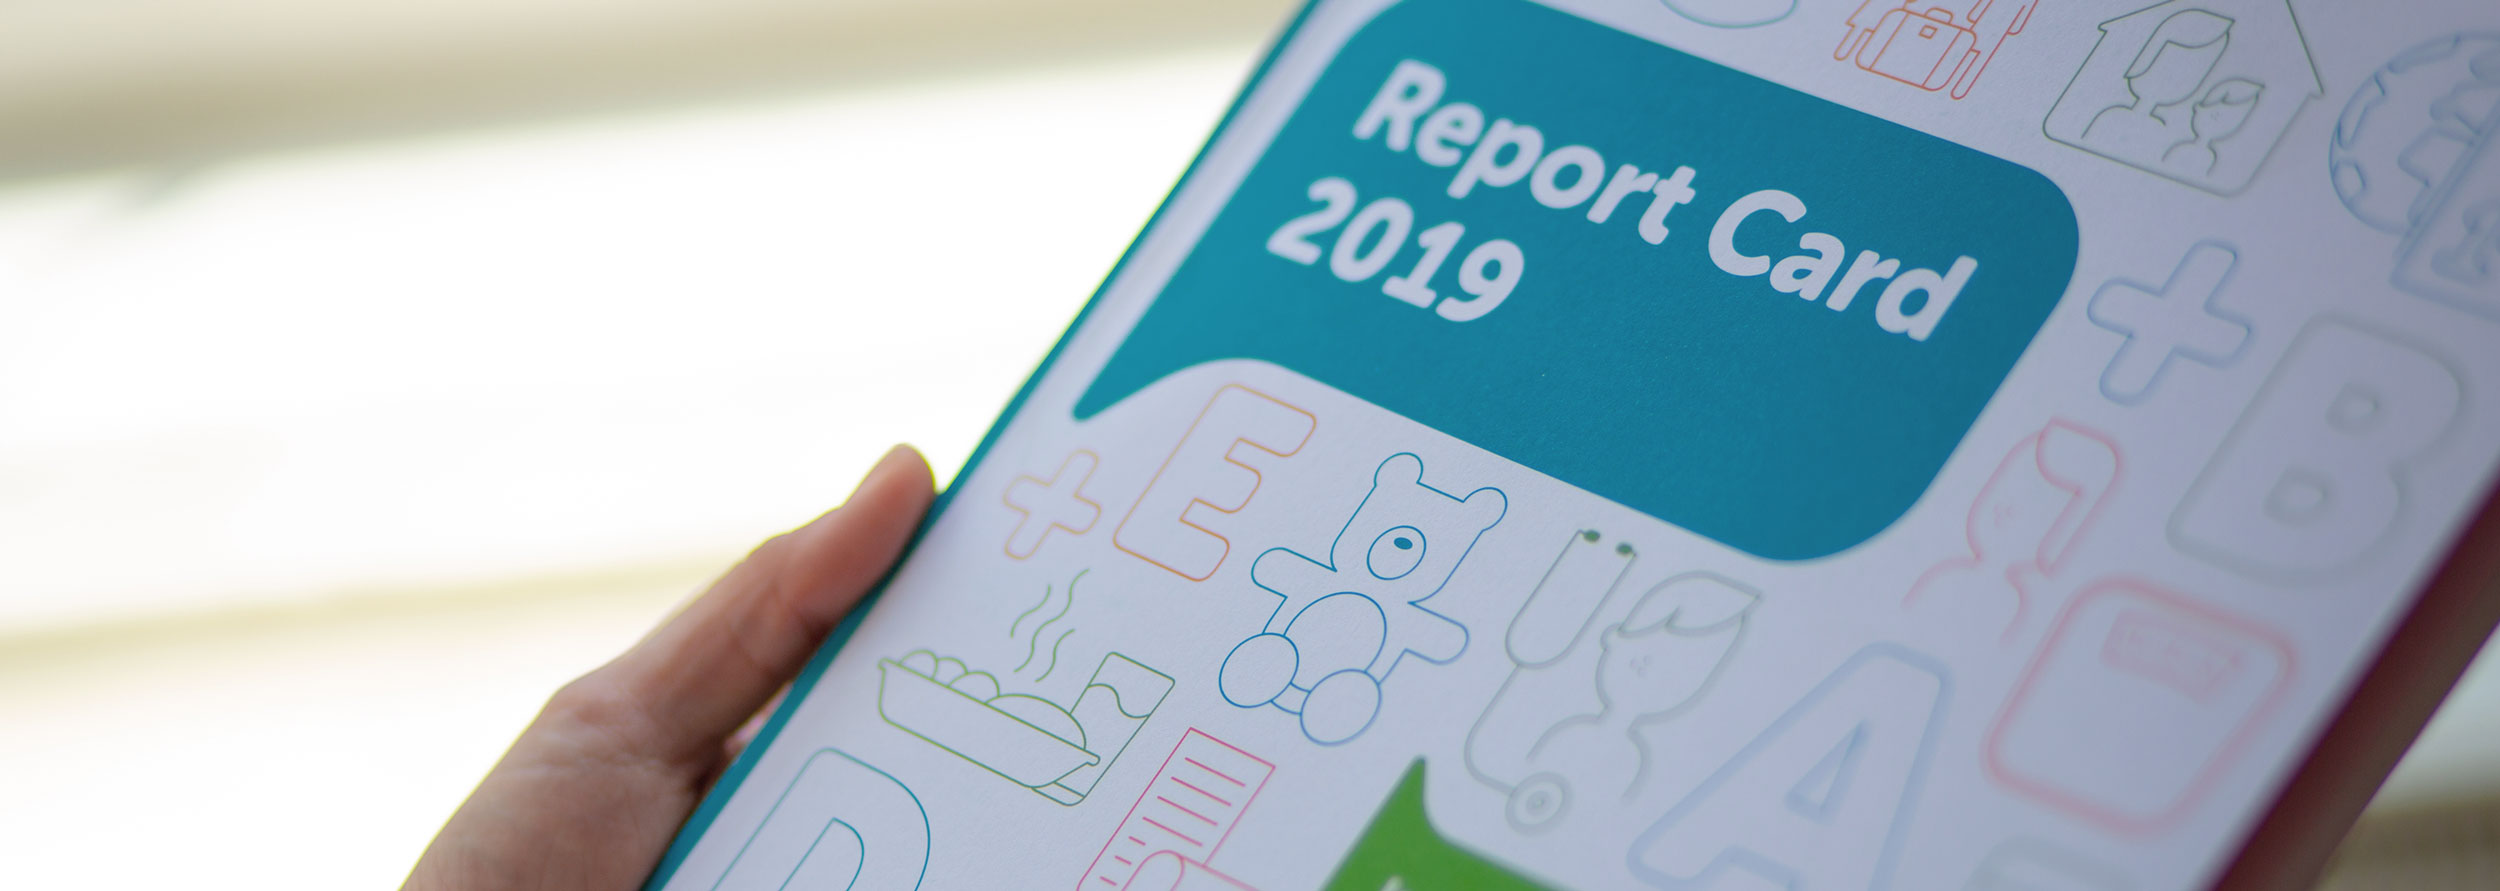 Children's Rights Alliance Report Card Design 2019